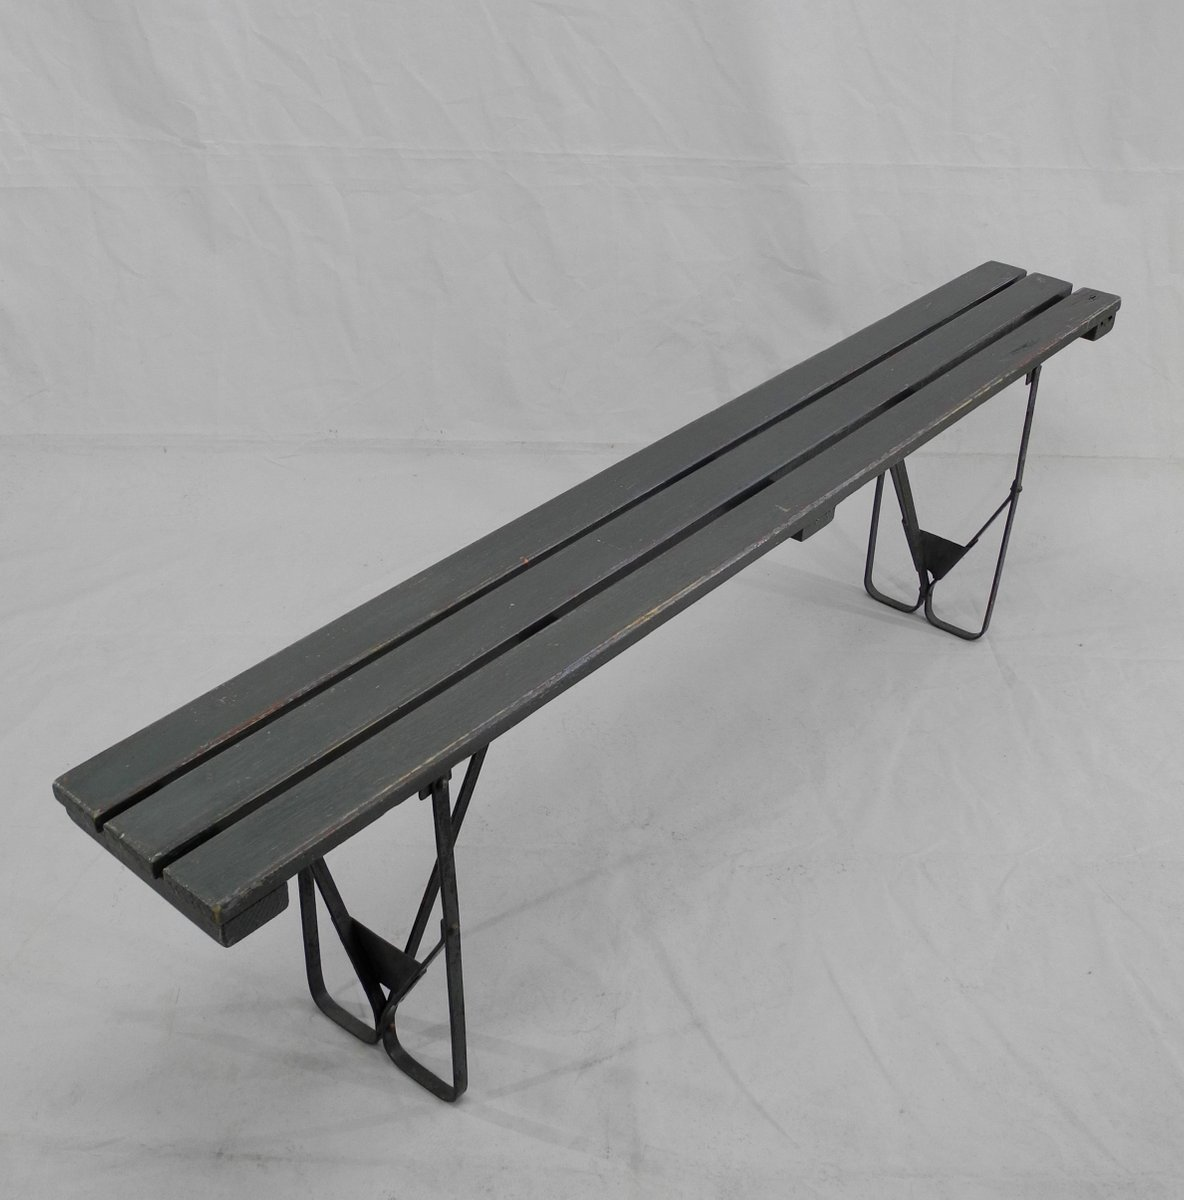 Vintage Wood Metal Folding Bench For Sale At Pamono